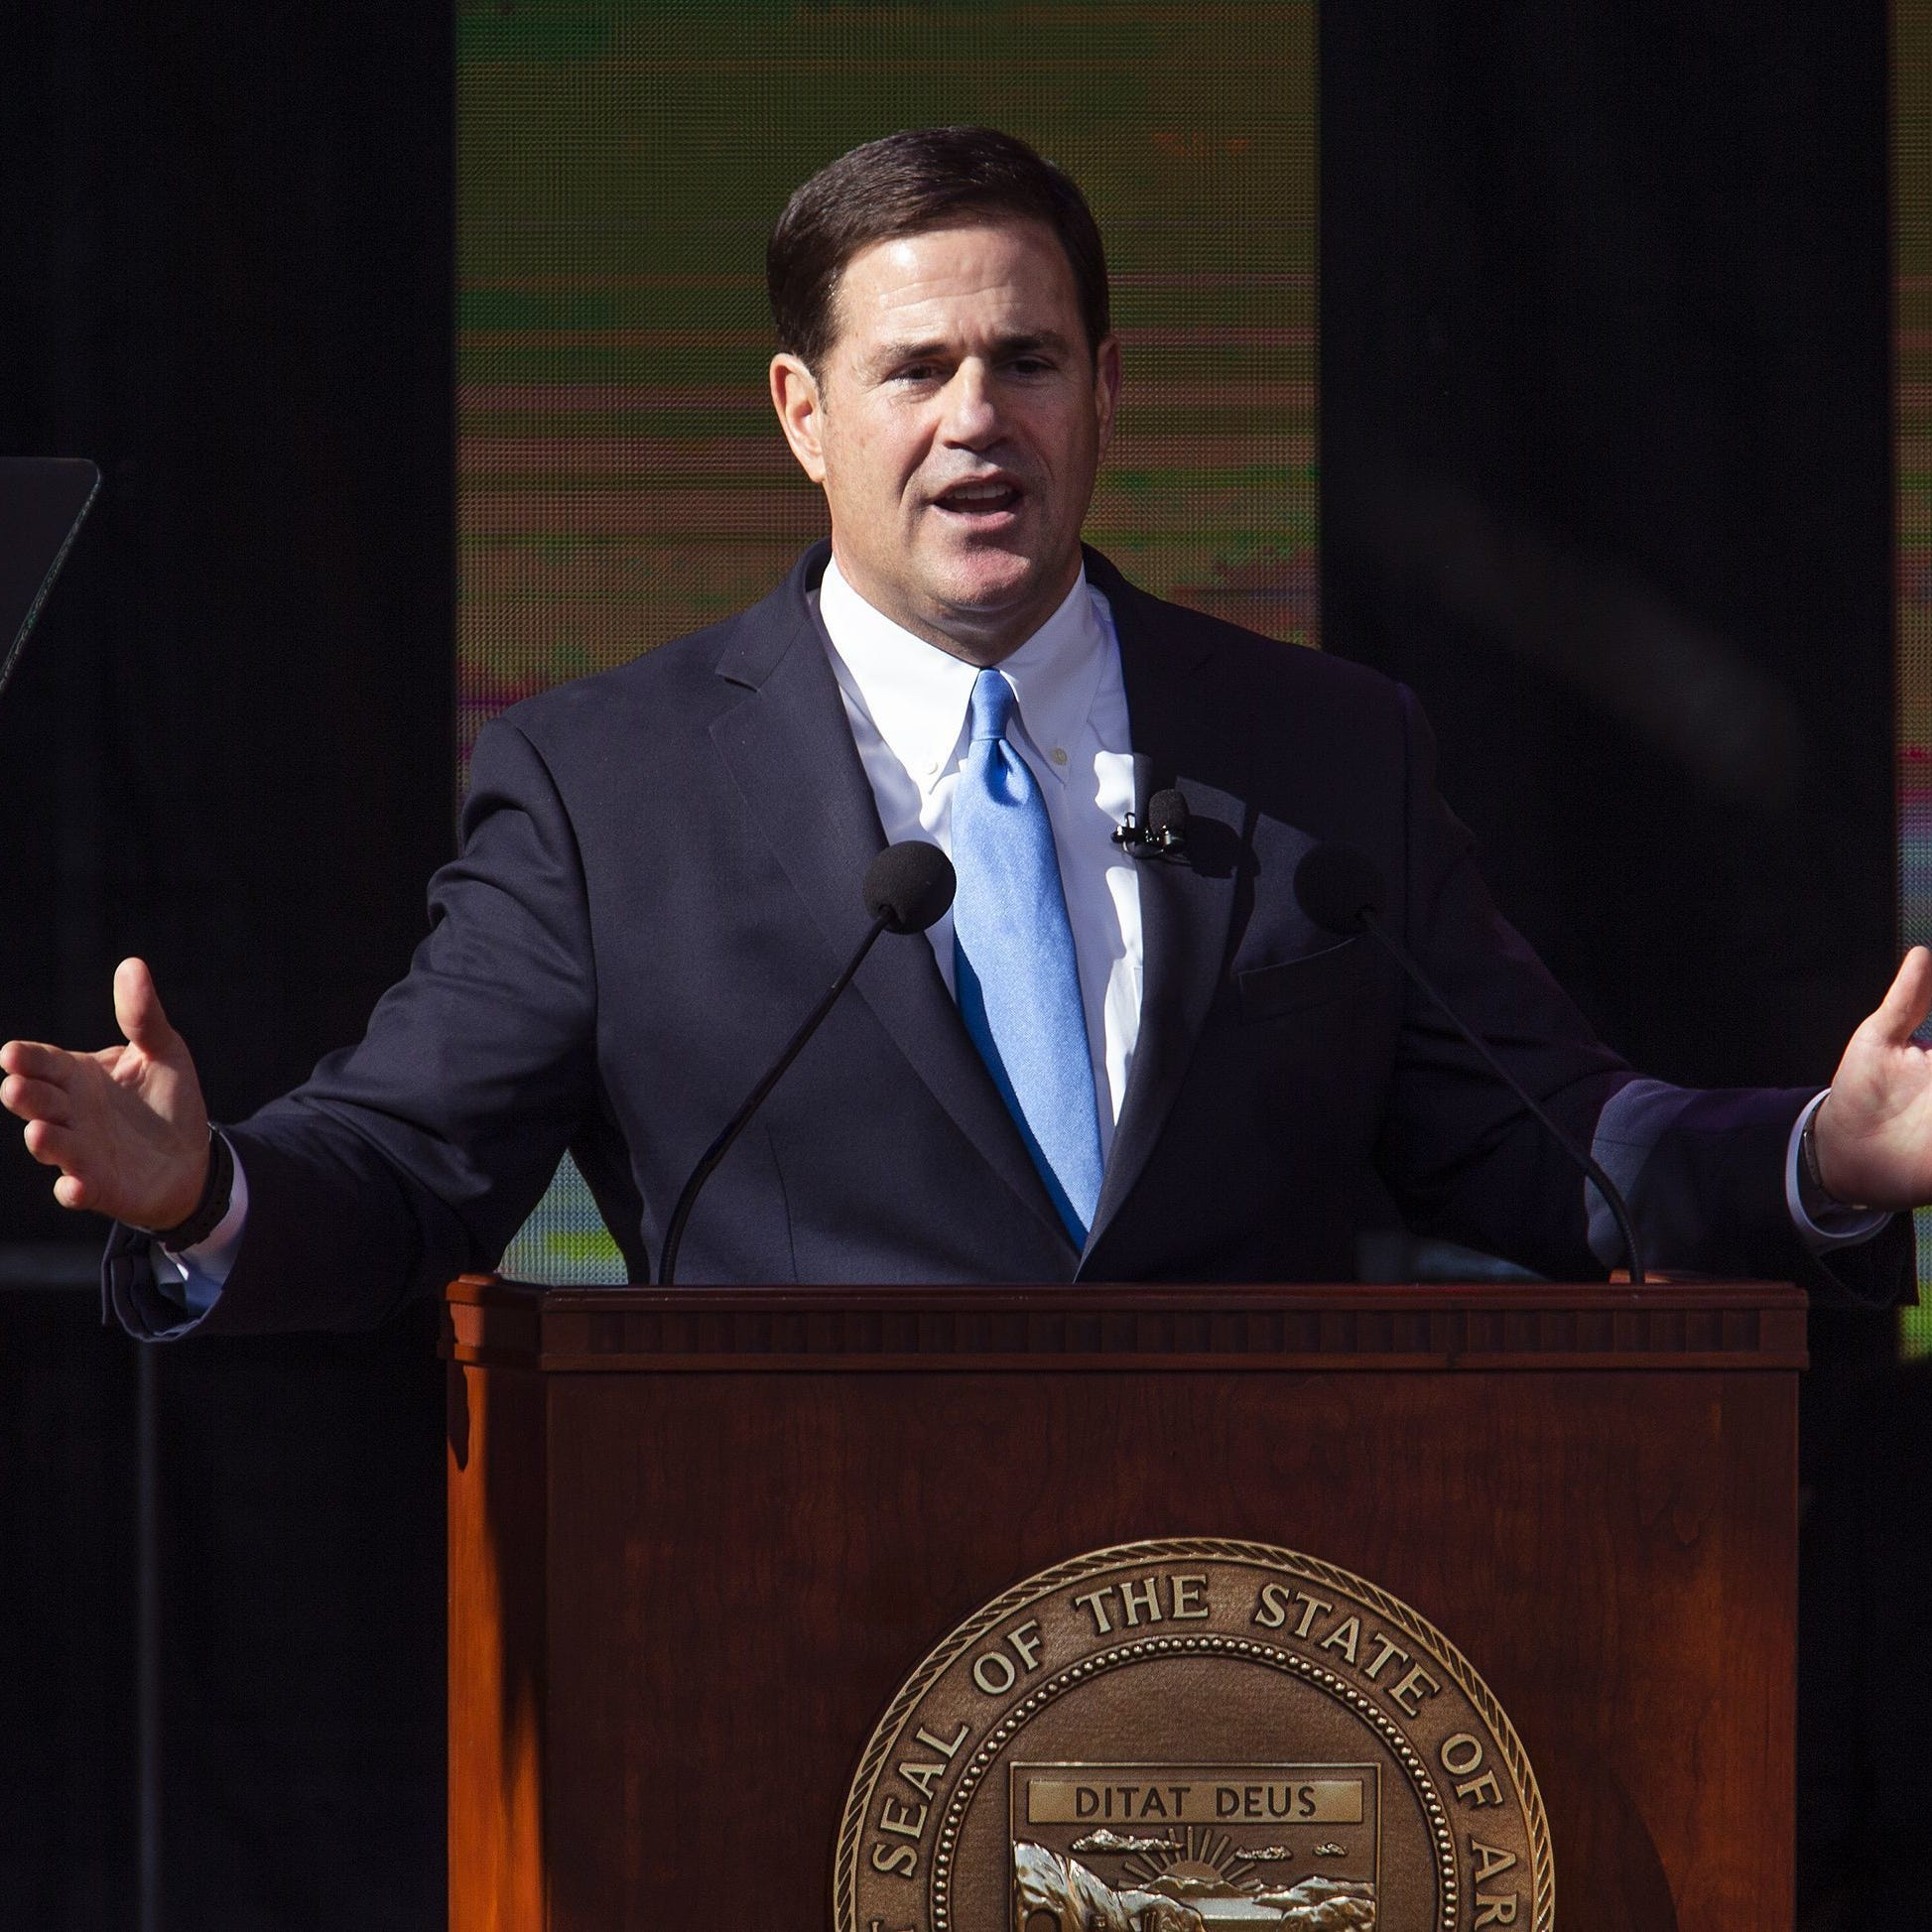 I'm glad Gov. Doug Ducey didn't take down that Easter post